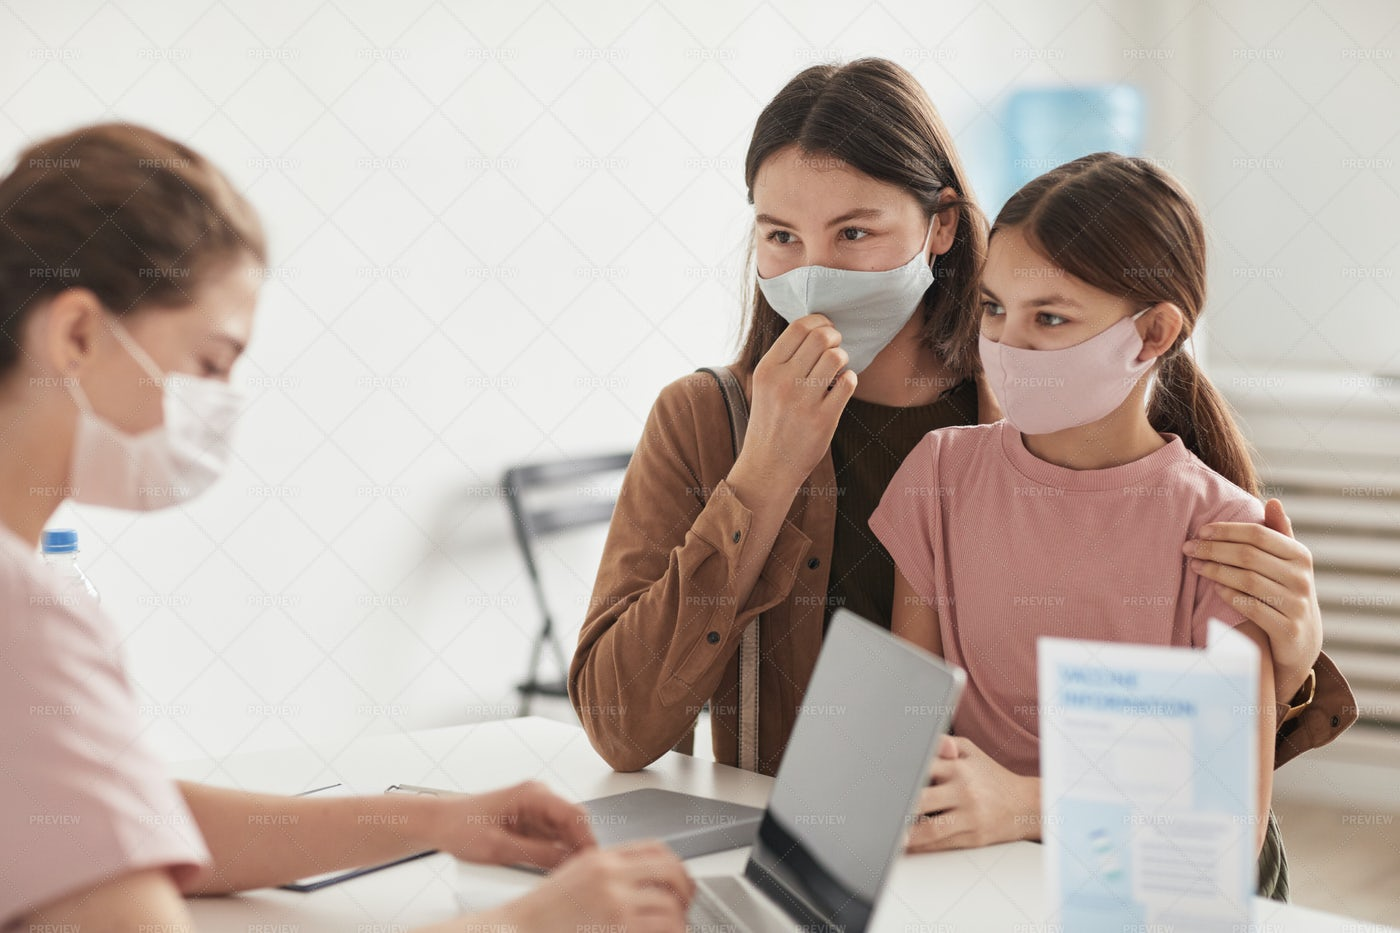 Mom And Girl Visiting Doctor: Stock Photos